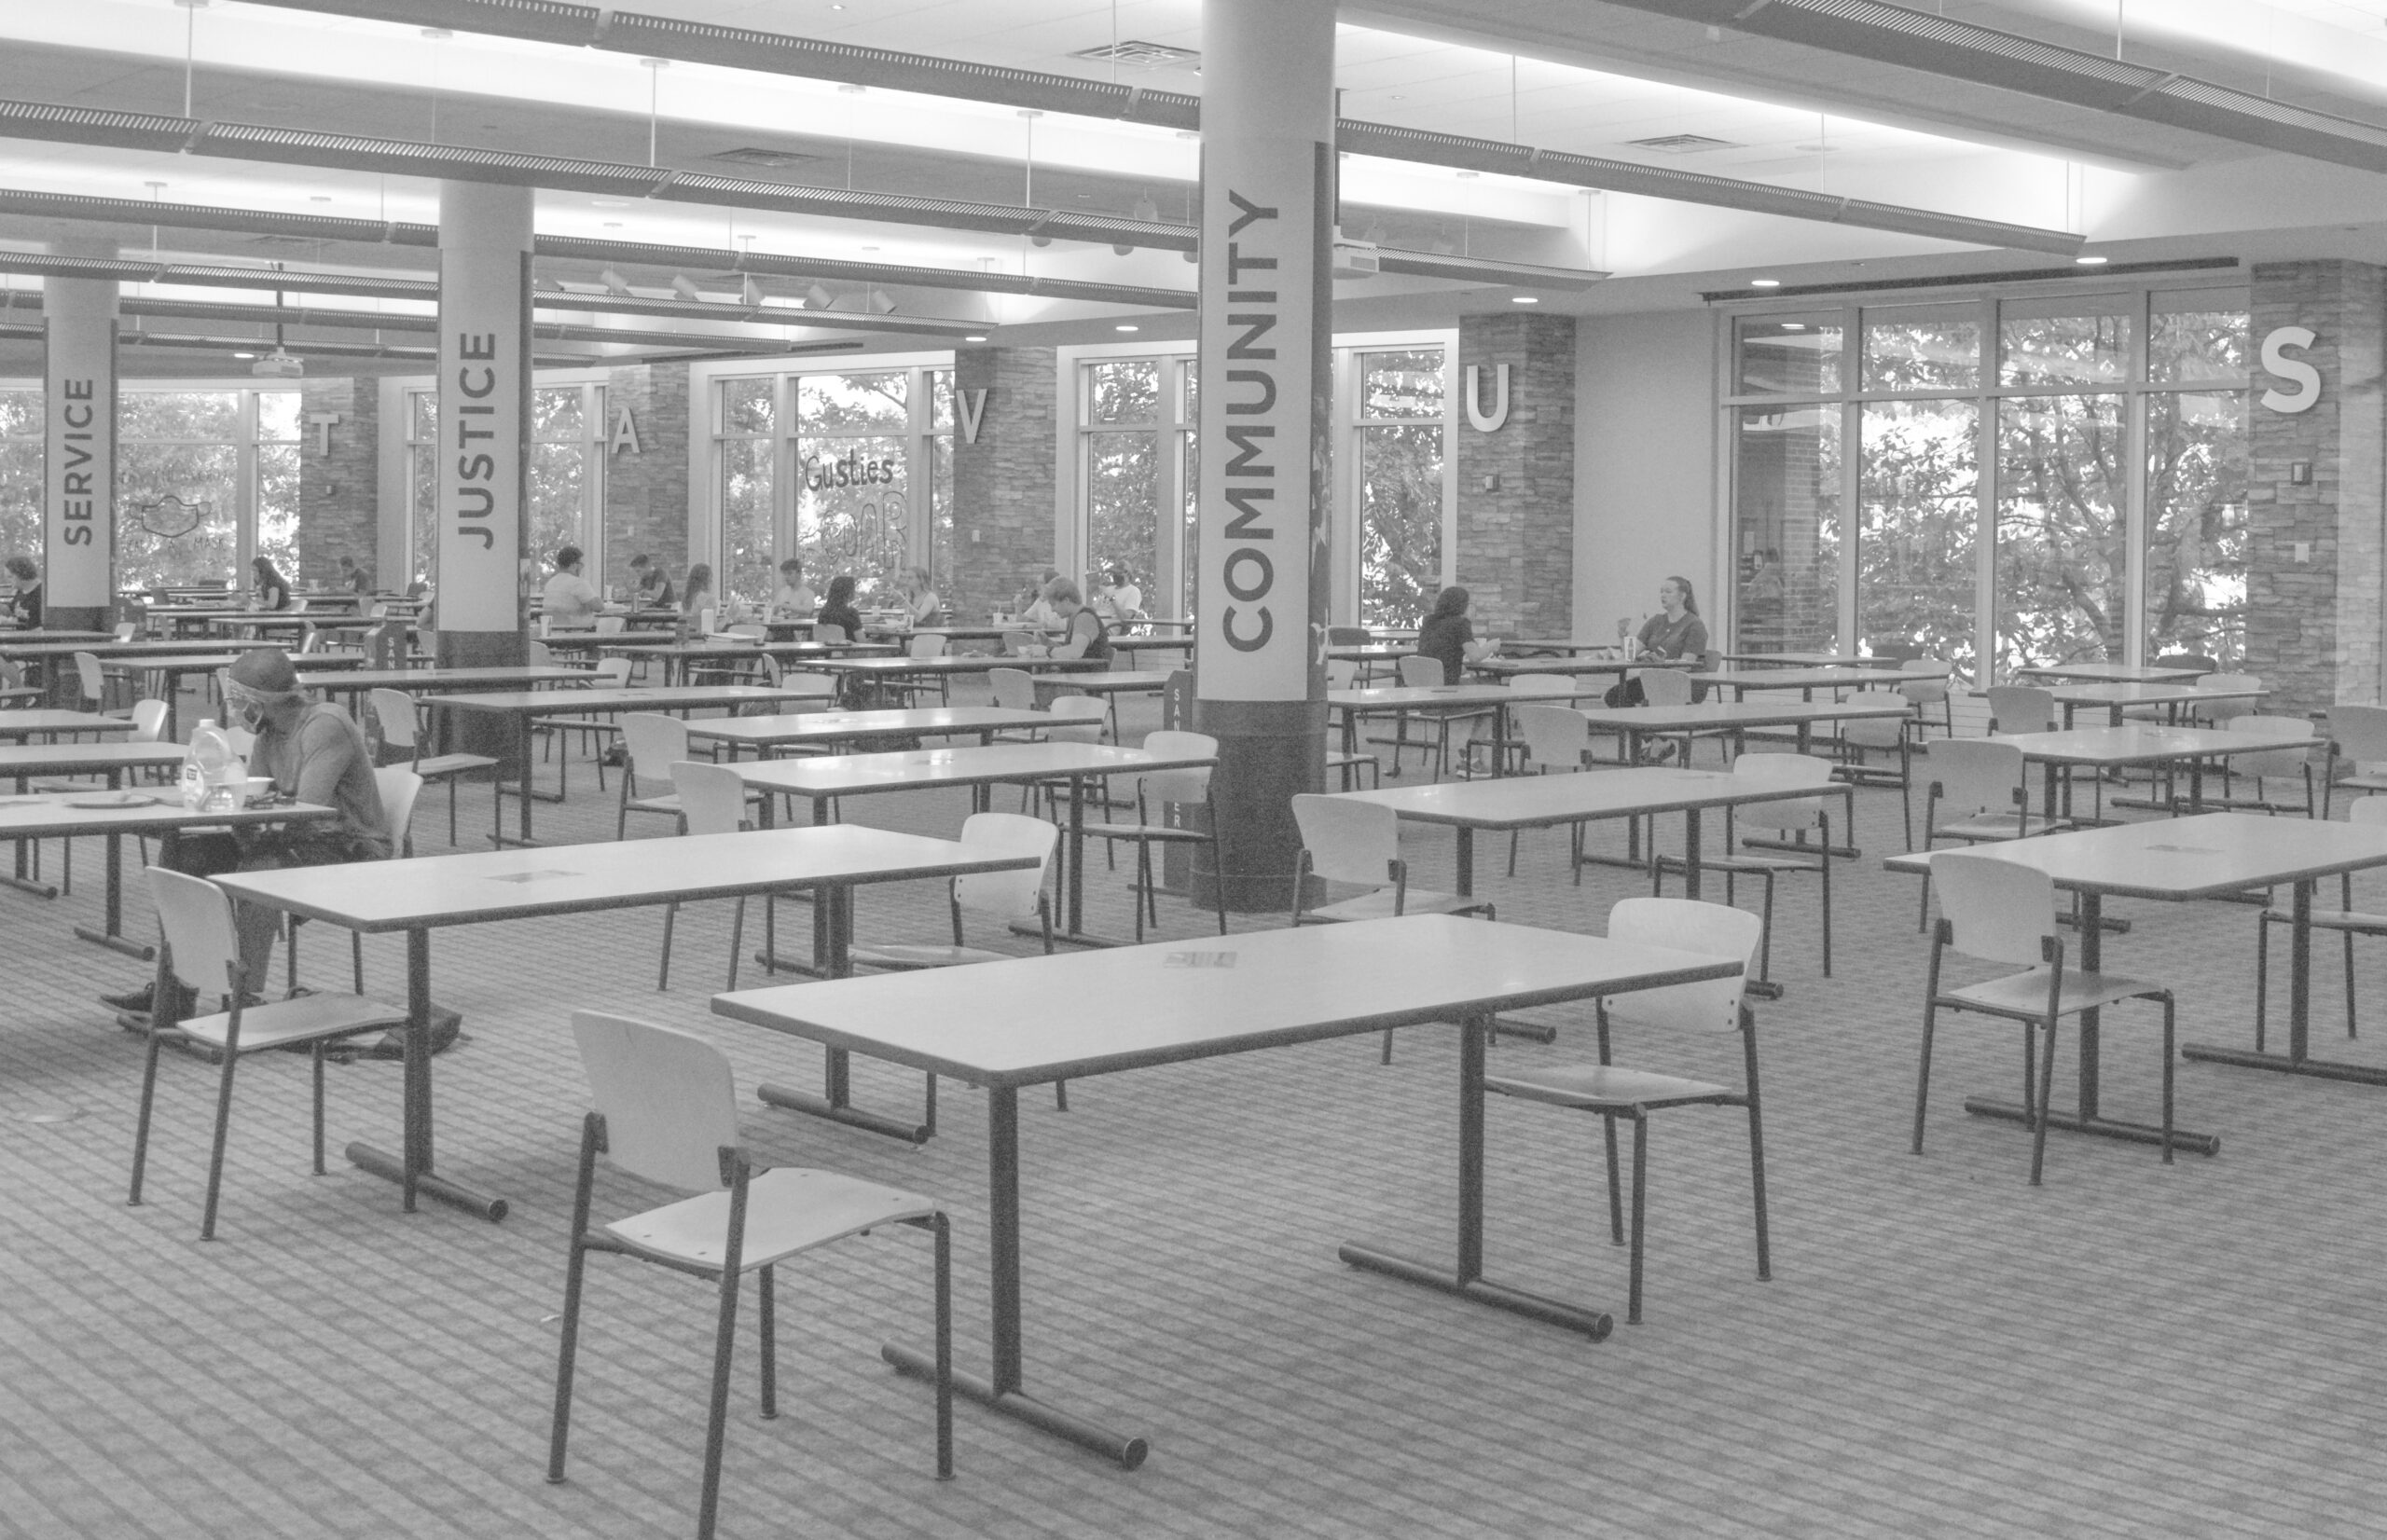 A glimpse of what the Caf will look like when students go home for break.